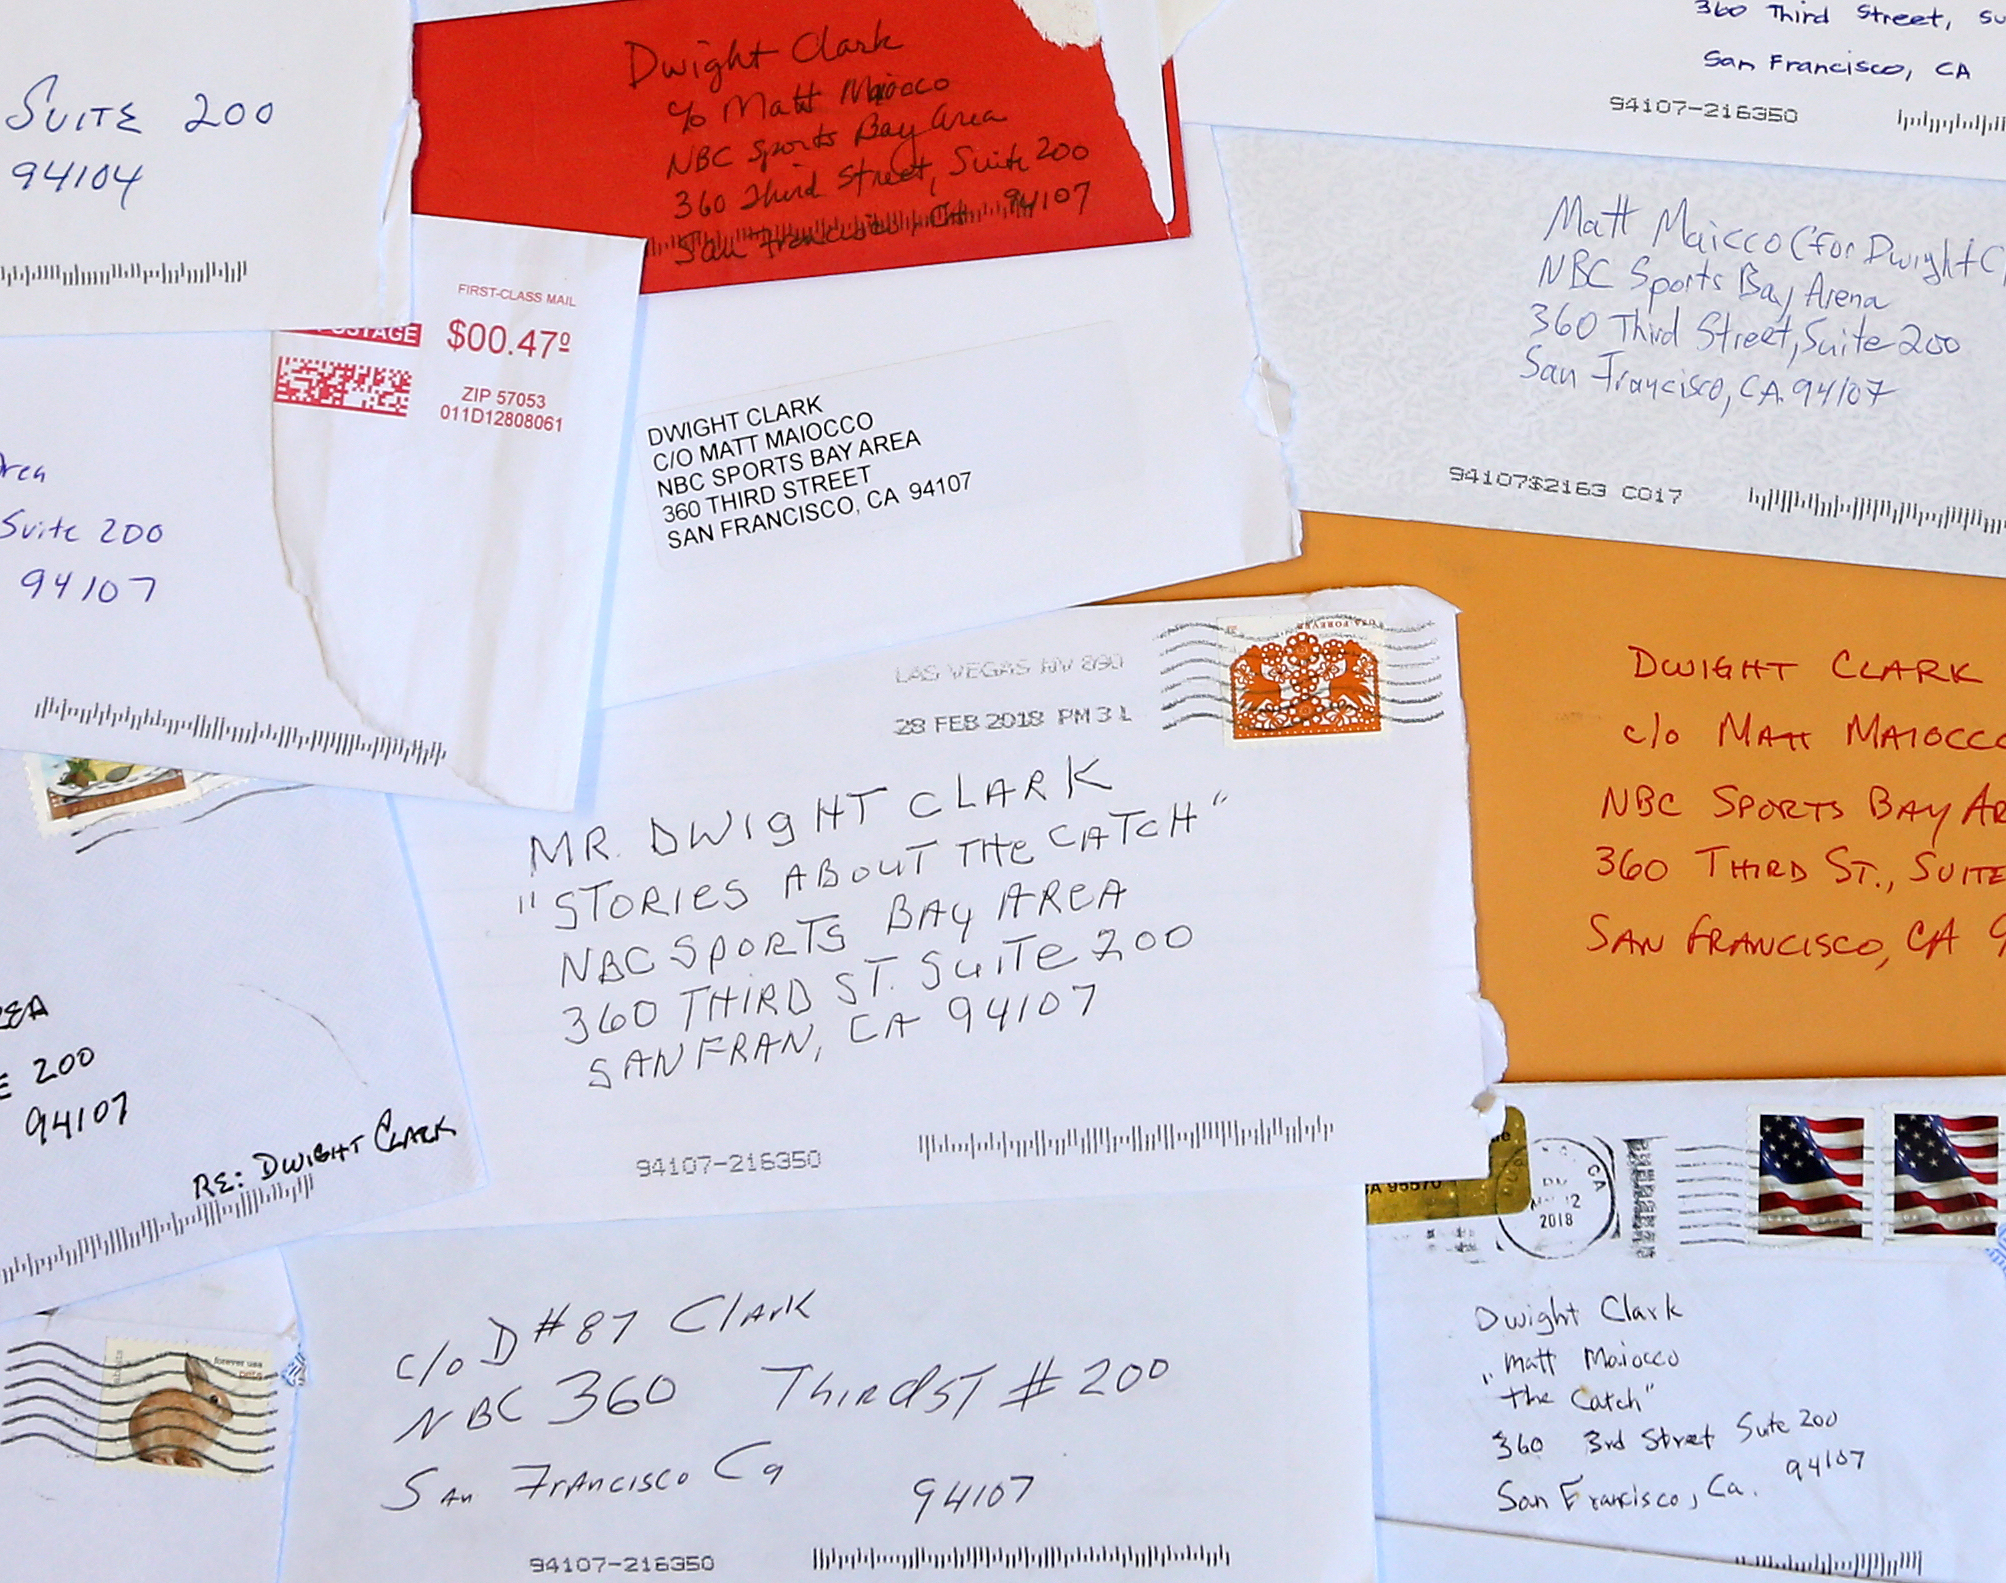 The Letters To 87 - Fans wrote to Dwight Clark to share their memories of The Catch and how it impacted their lives.